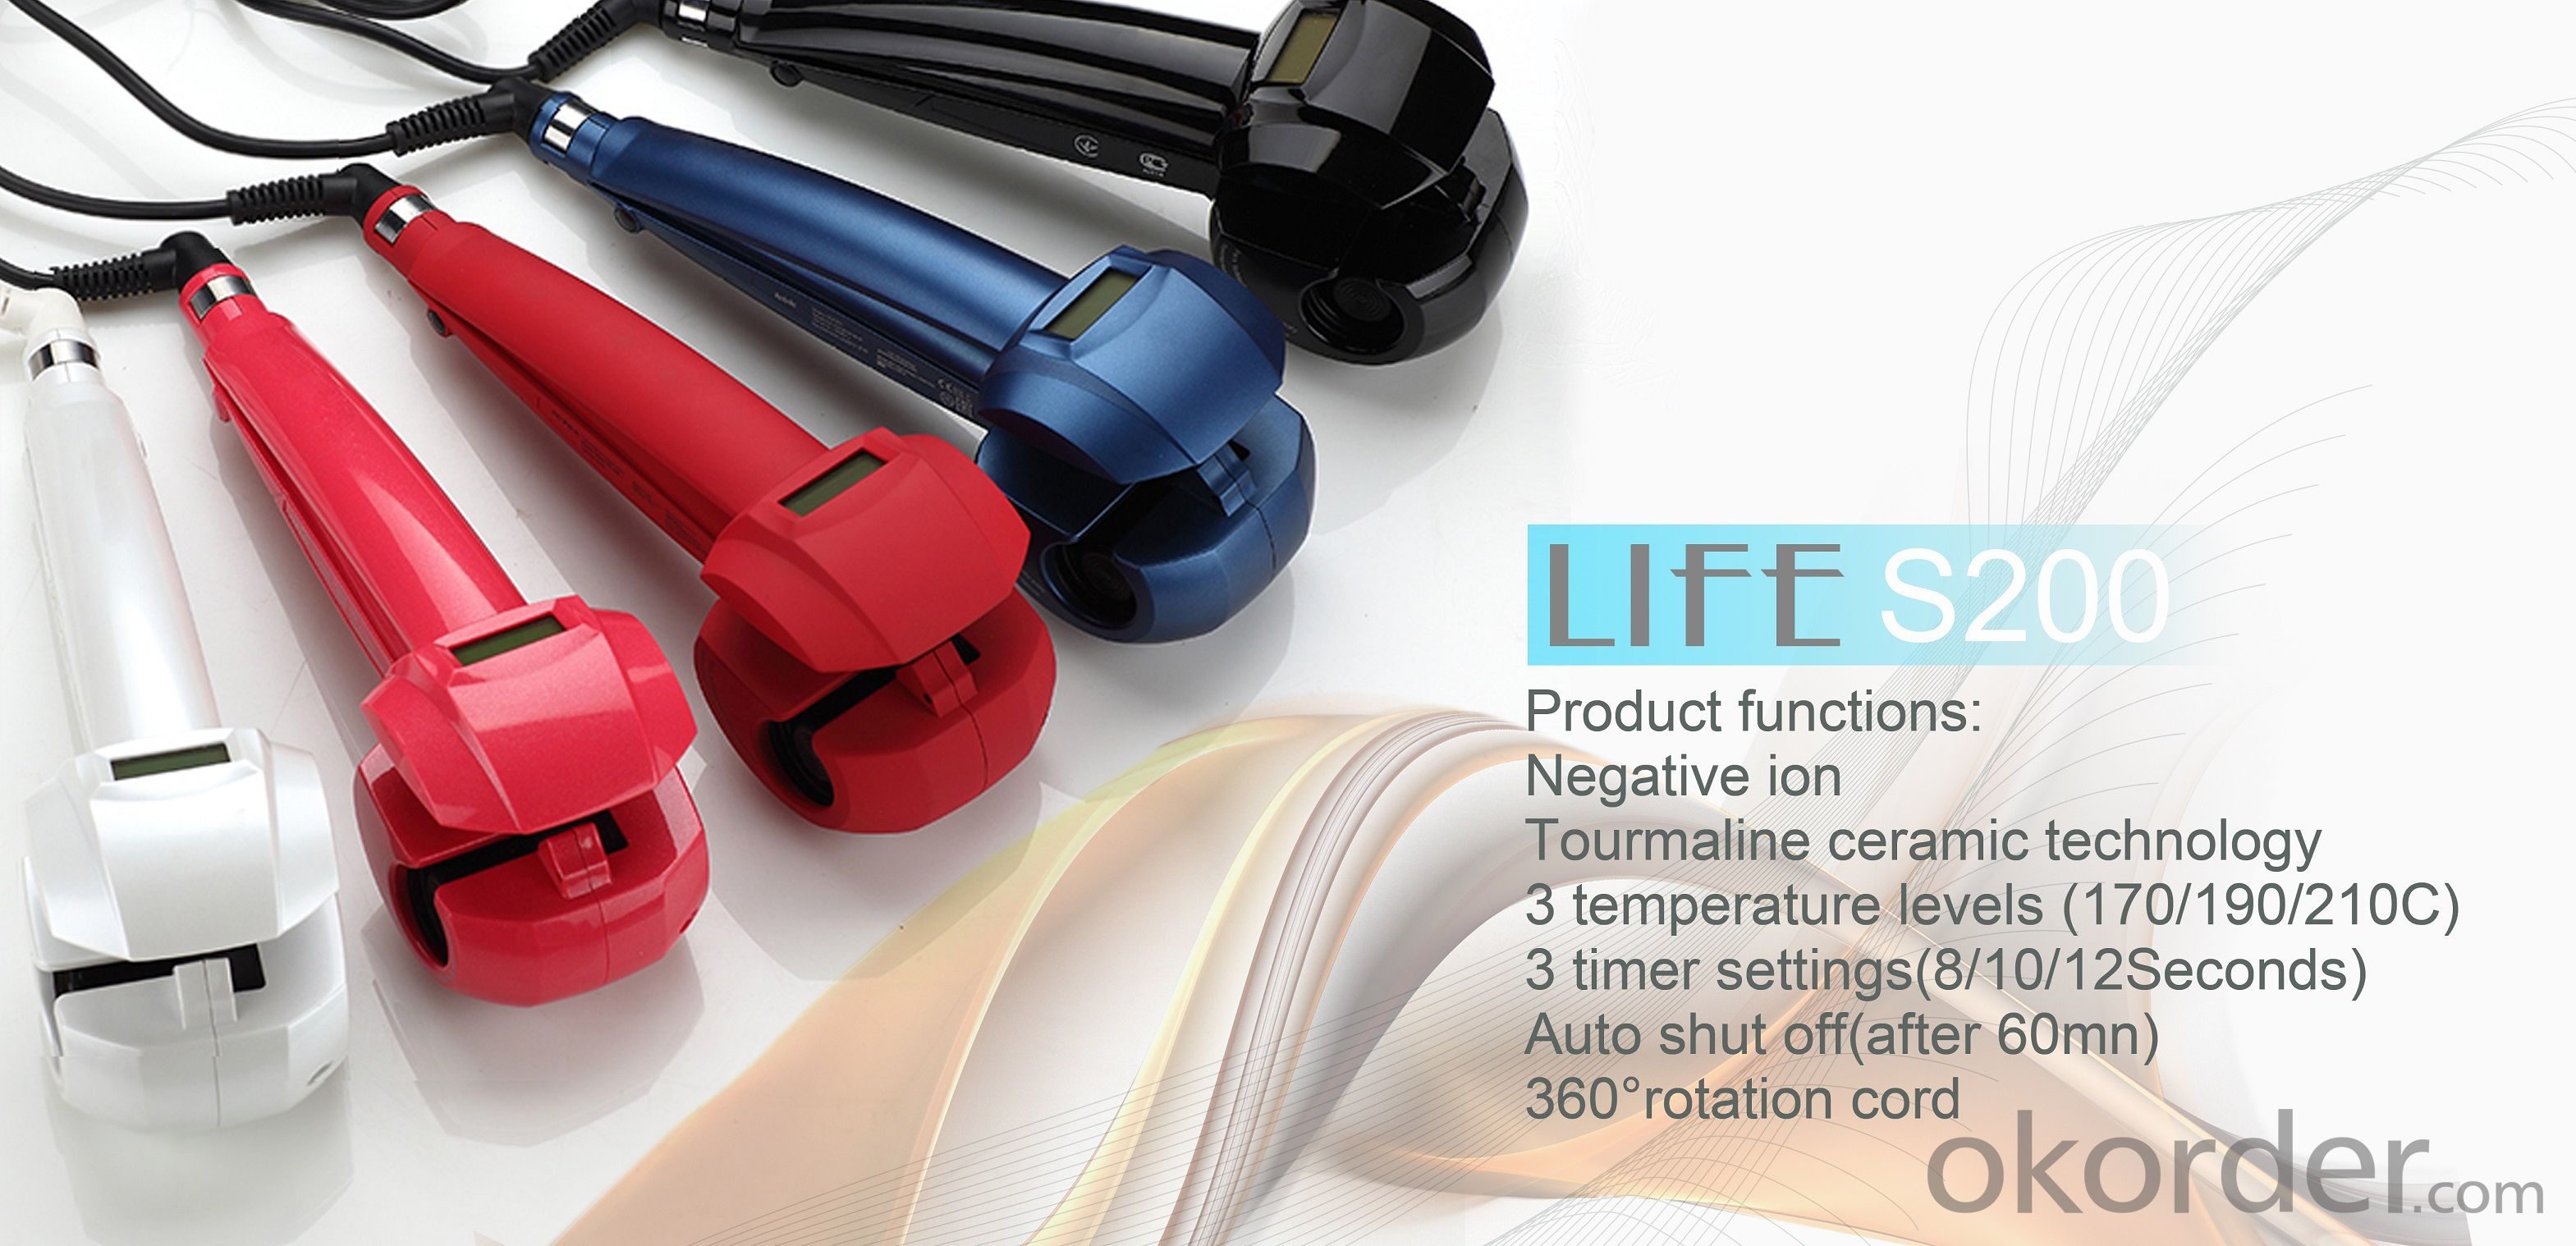 Auto hair curler S200 100-240V 50HZ 25W Sleep mode Auto shut off